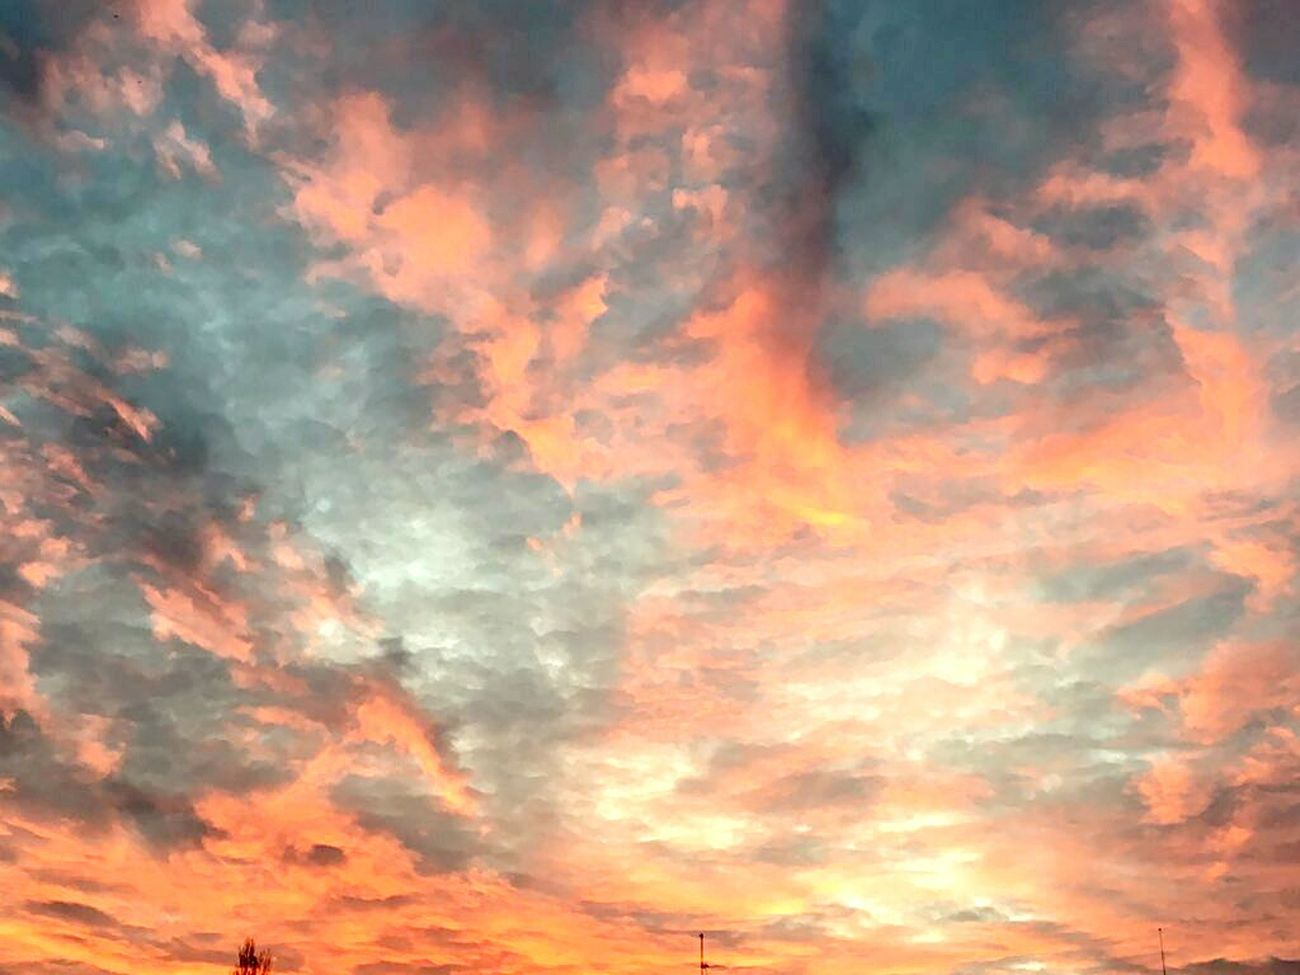 Cloud - Sky Sky Sunset Beauty In Nature Heaven Cloudscape Nature Dramatic Sky Red No People Backgrounds Scenics Outdoors Meteorology Beauty Tranquility Space Day EyeEmNewHere Multi Colored Artistic Light And Shadow Sunsets Pink Red